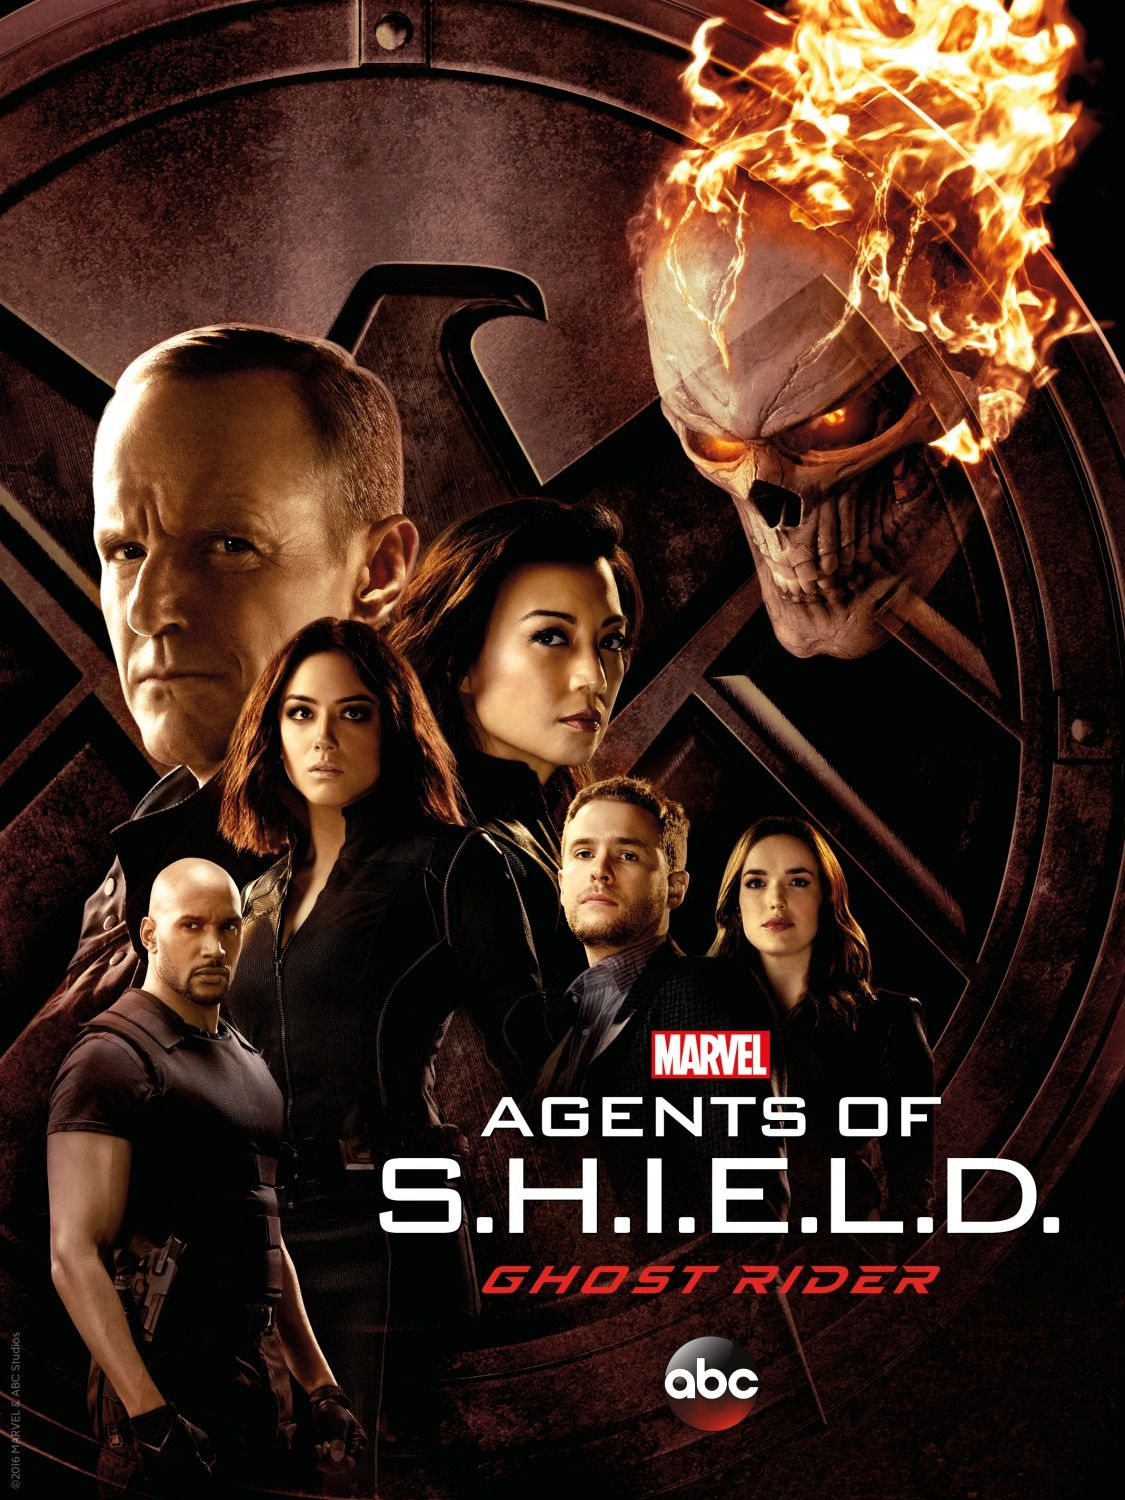 agents_of_shield_season_4_poster_ghost_rider